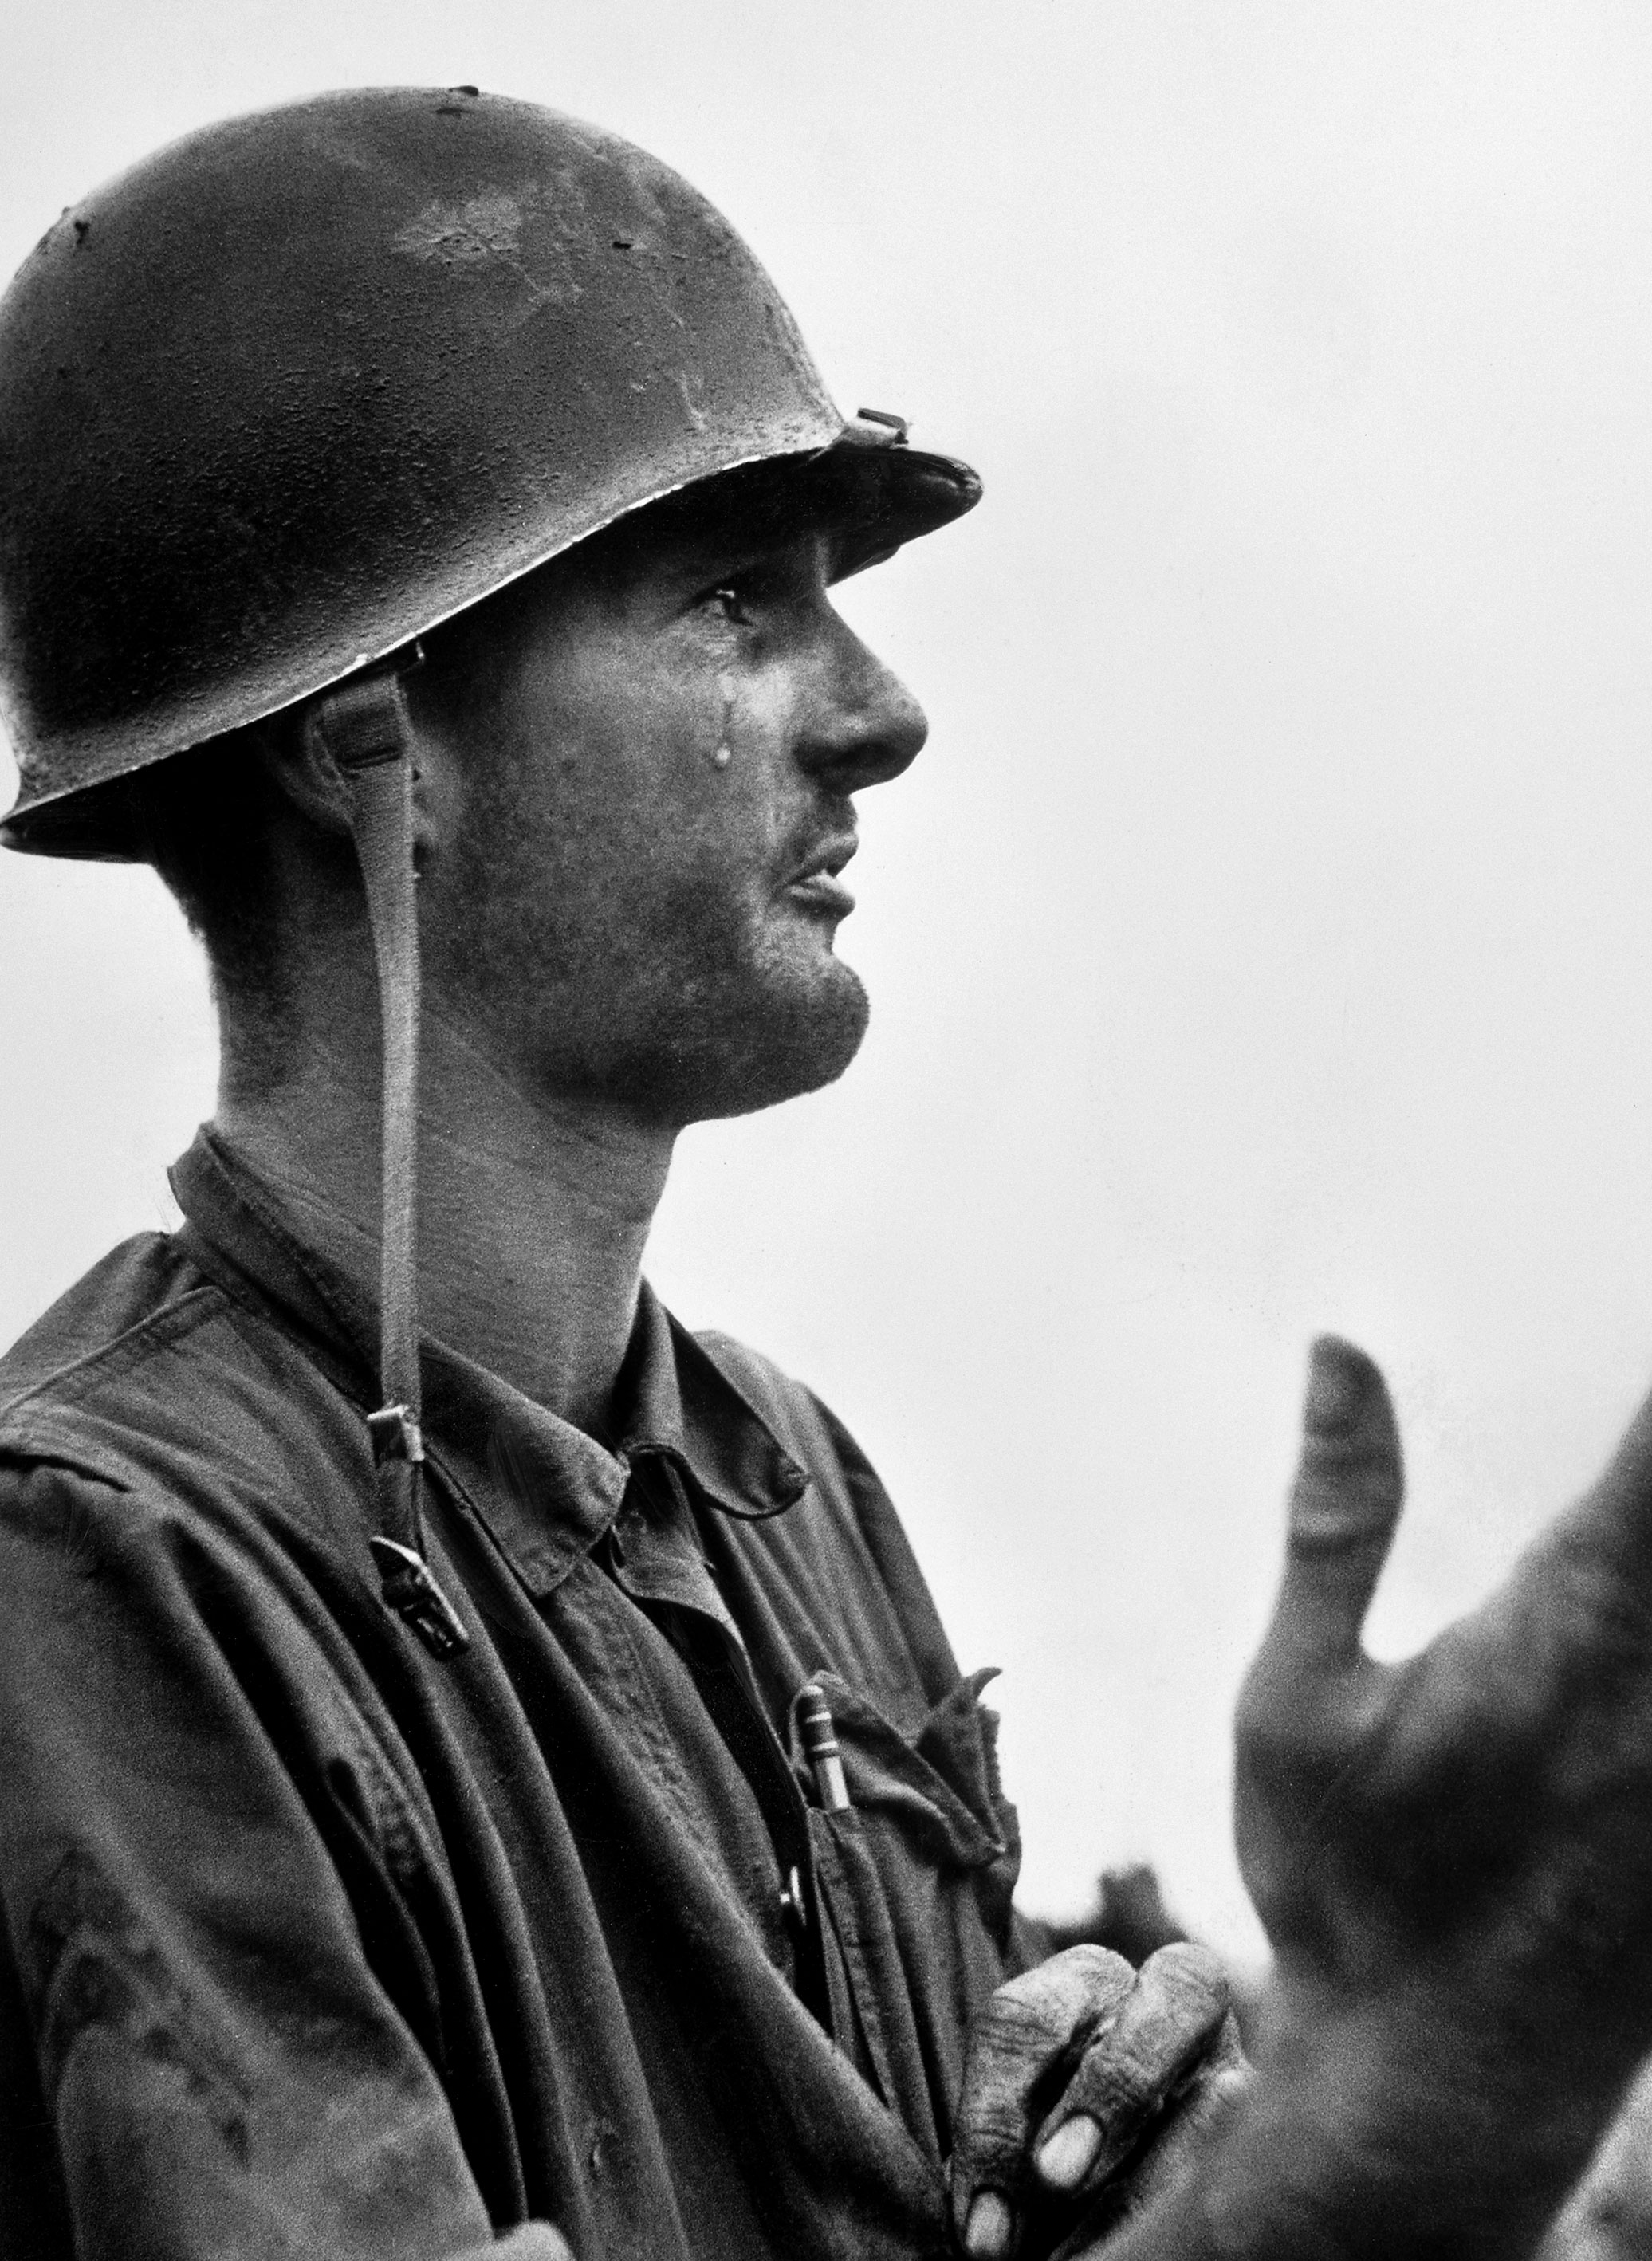 """""""Corporal Leonard Hayworth ... shows his utter frustration as he has crawled back from his position only to learn that the ammo is gone. Coda: At the last moment, supplies arrived and the men were able to hold their position."""" — From David Douglas Duncan's 1951 book, <em>This Is War!</em>"""